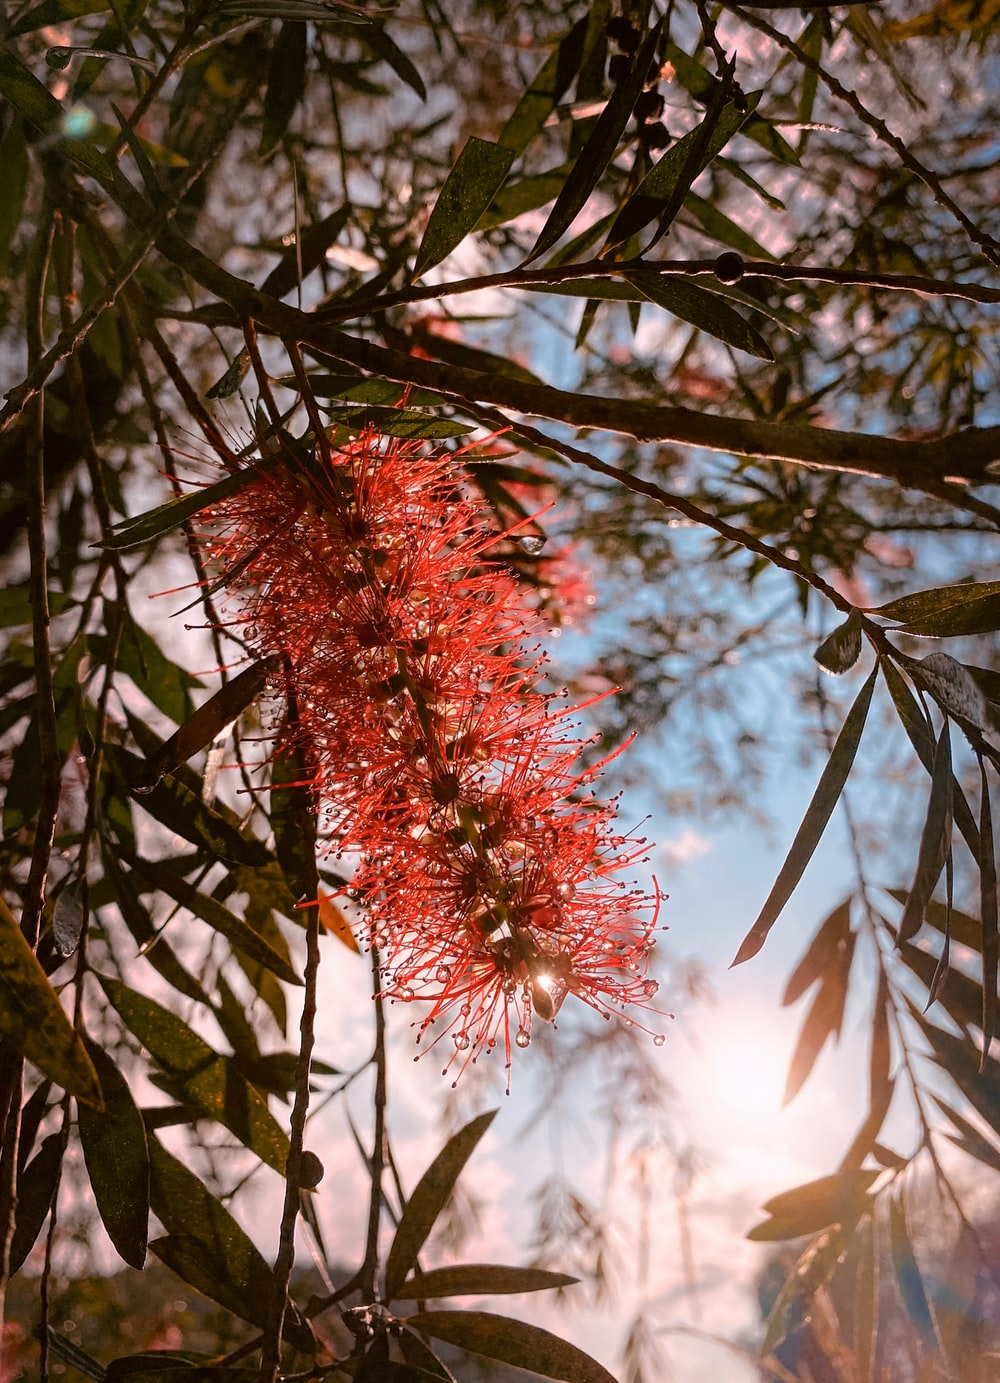 red flower on brown tree branch during daytime